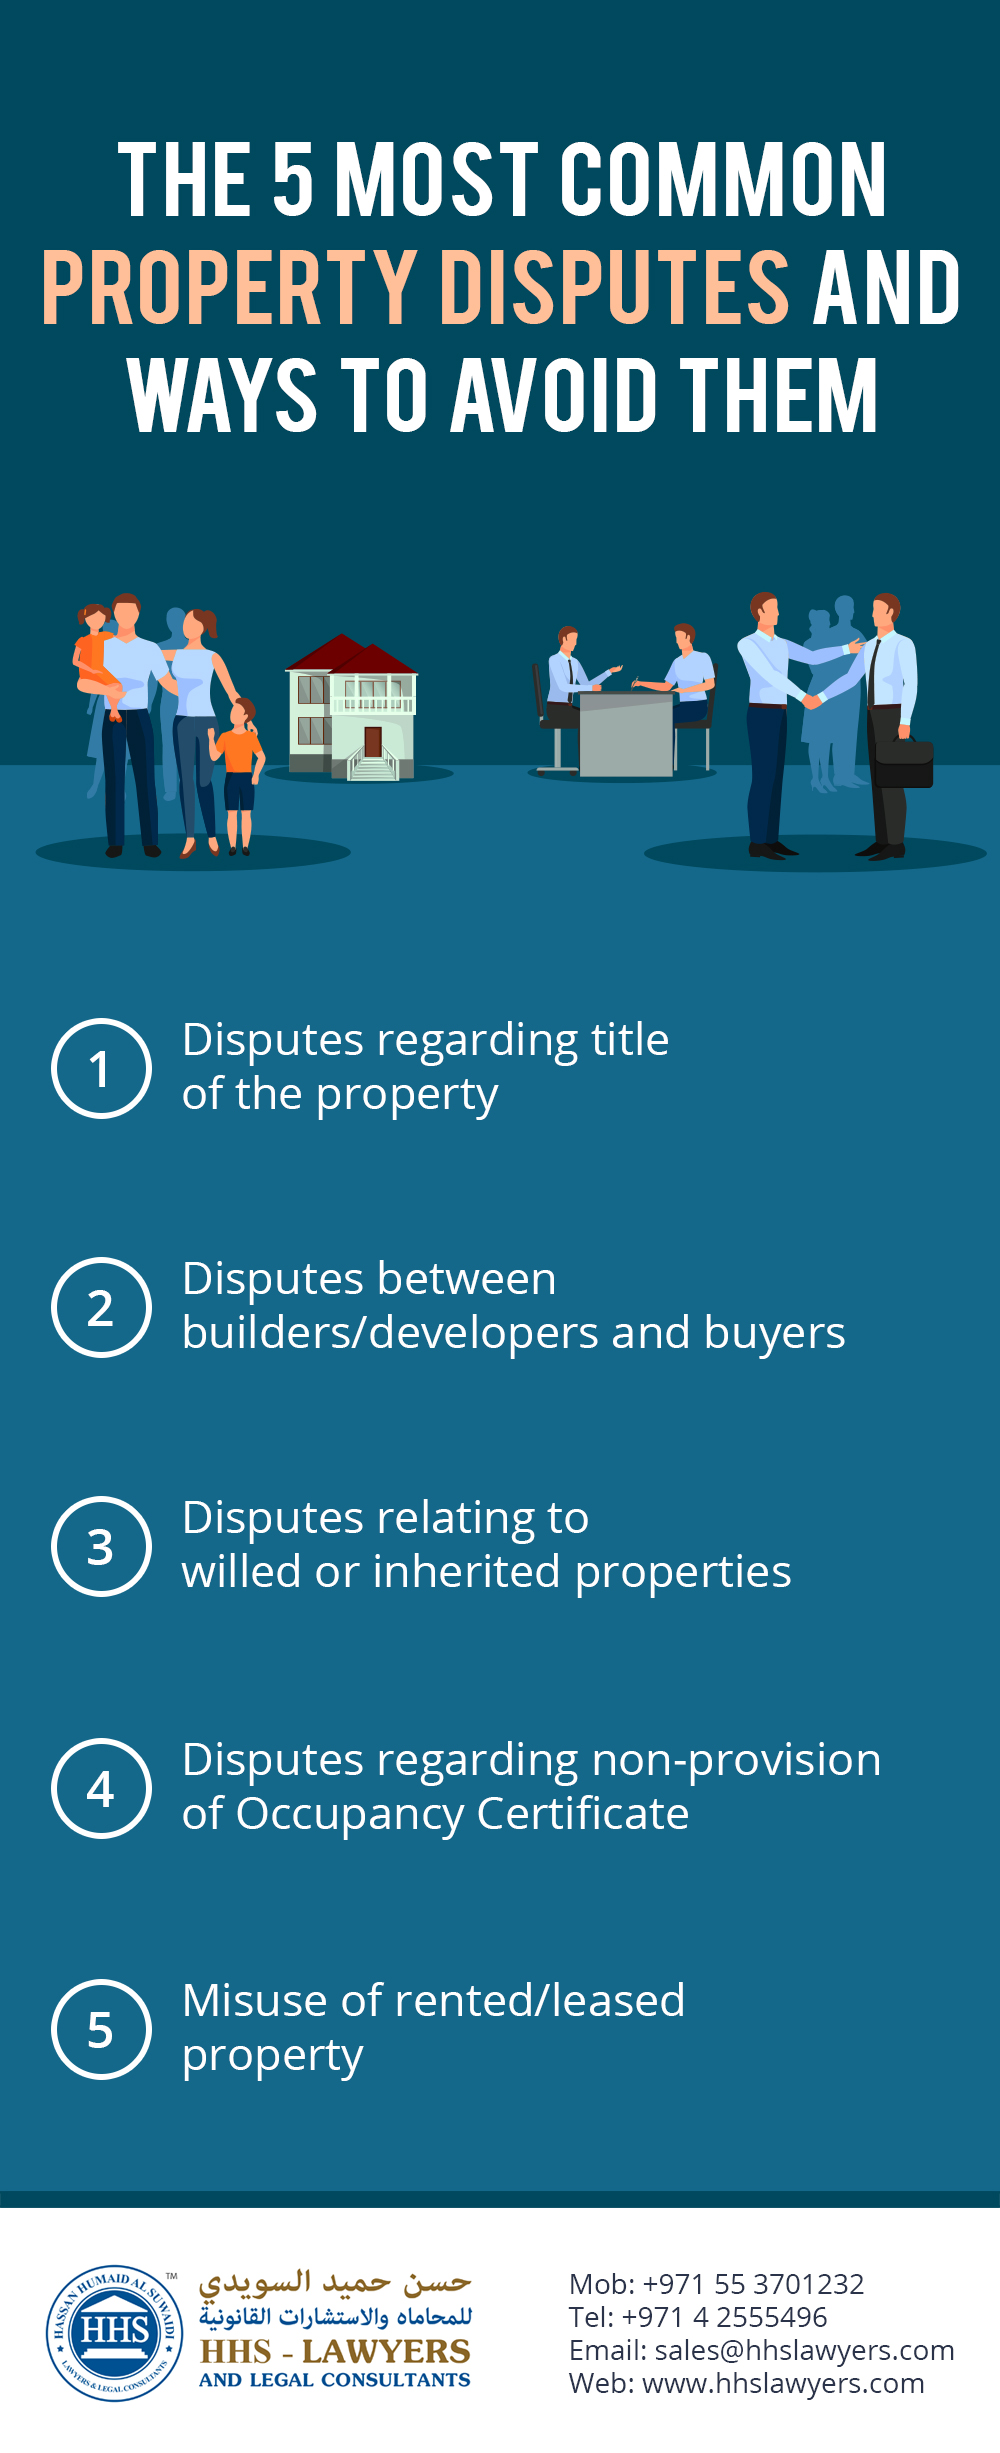 The 5 Most Common Property Disputes and Ways to Avoid Them.jpg